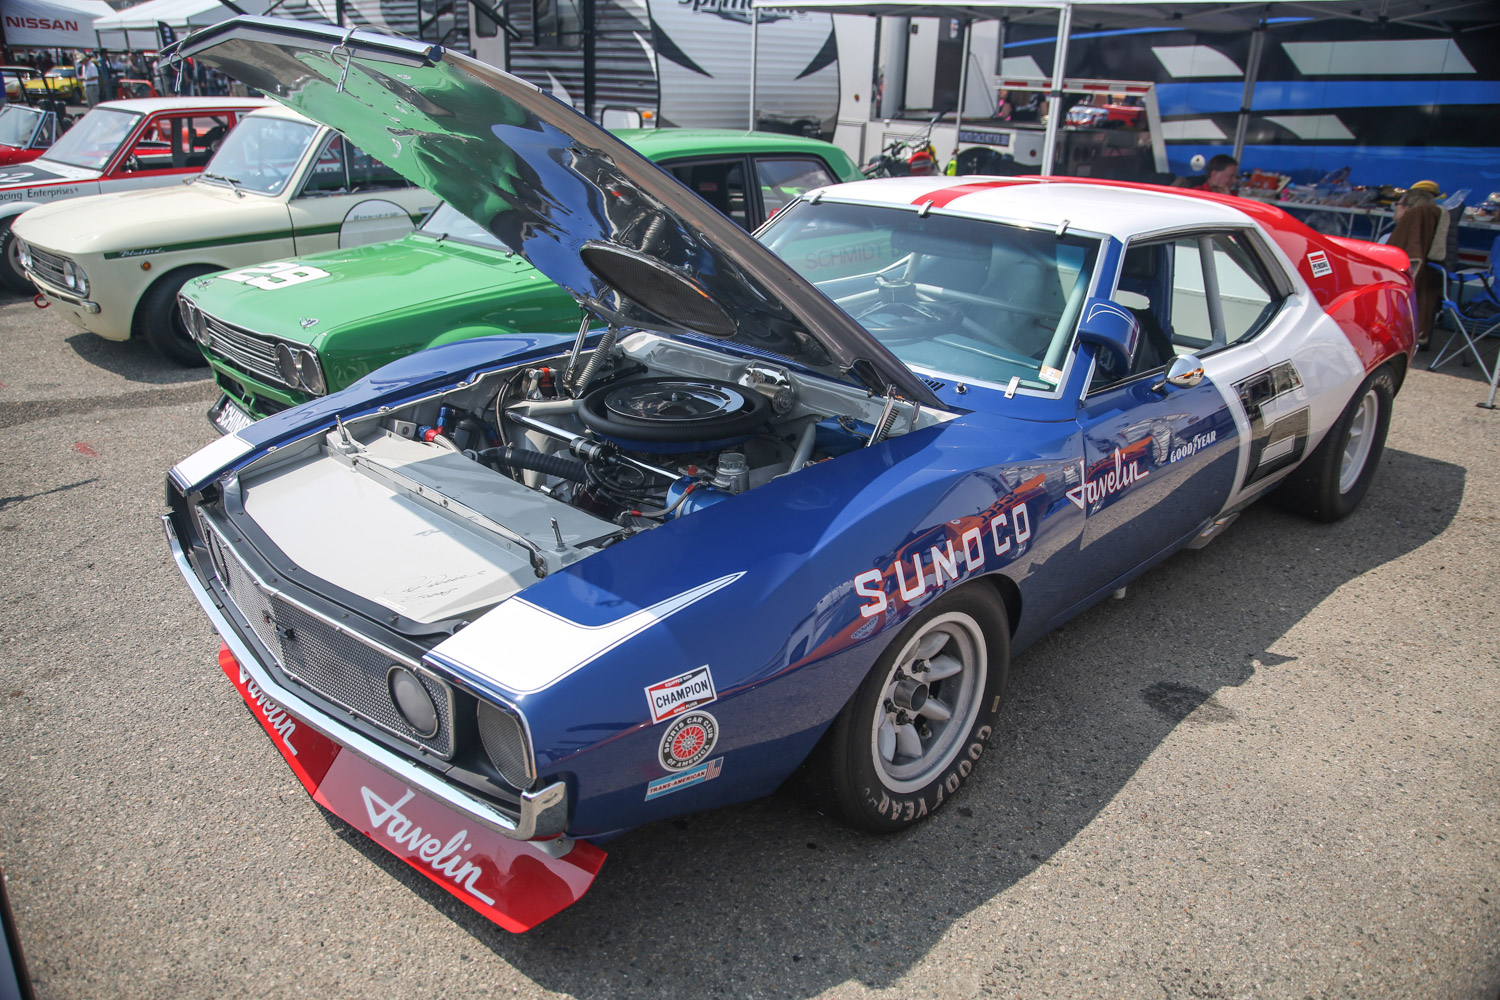 Rolex reunion amc javelin race car red white blue